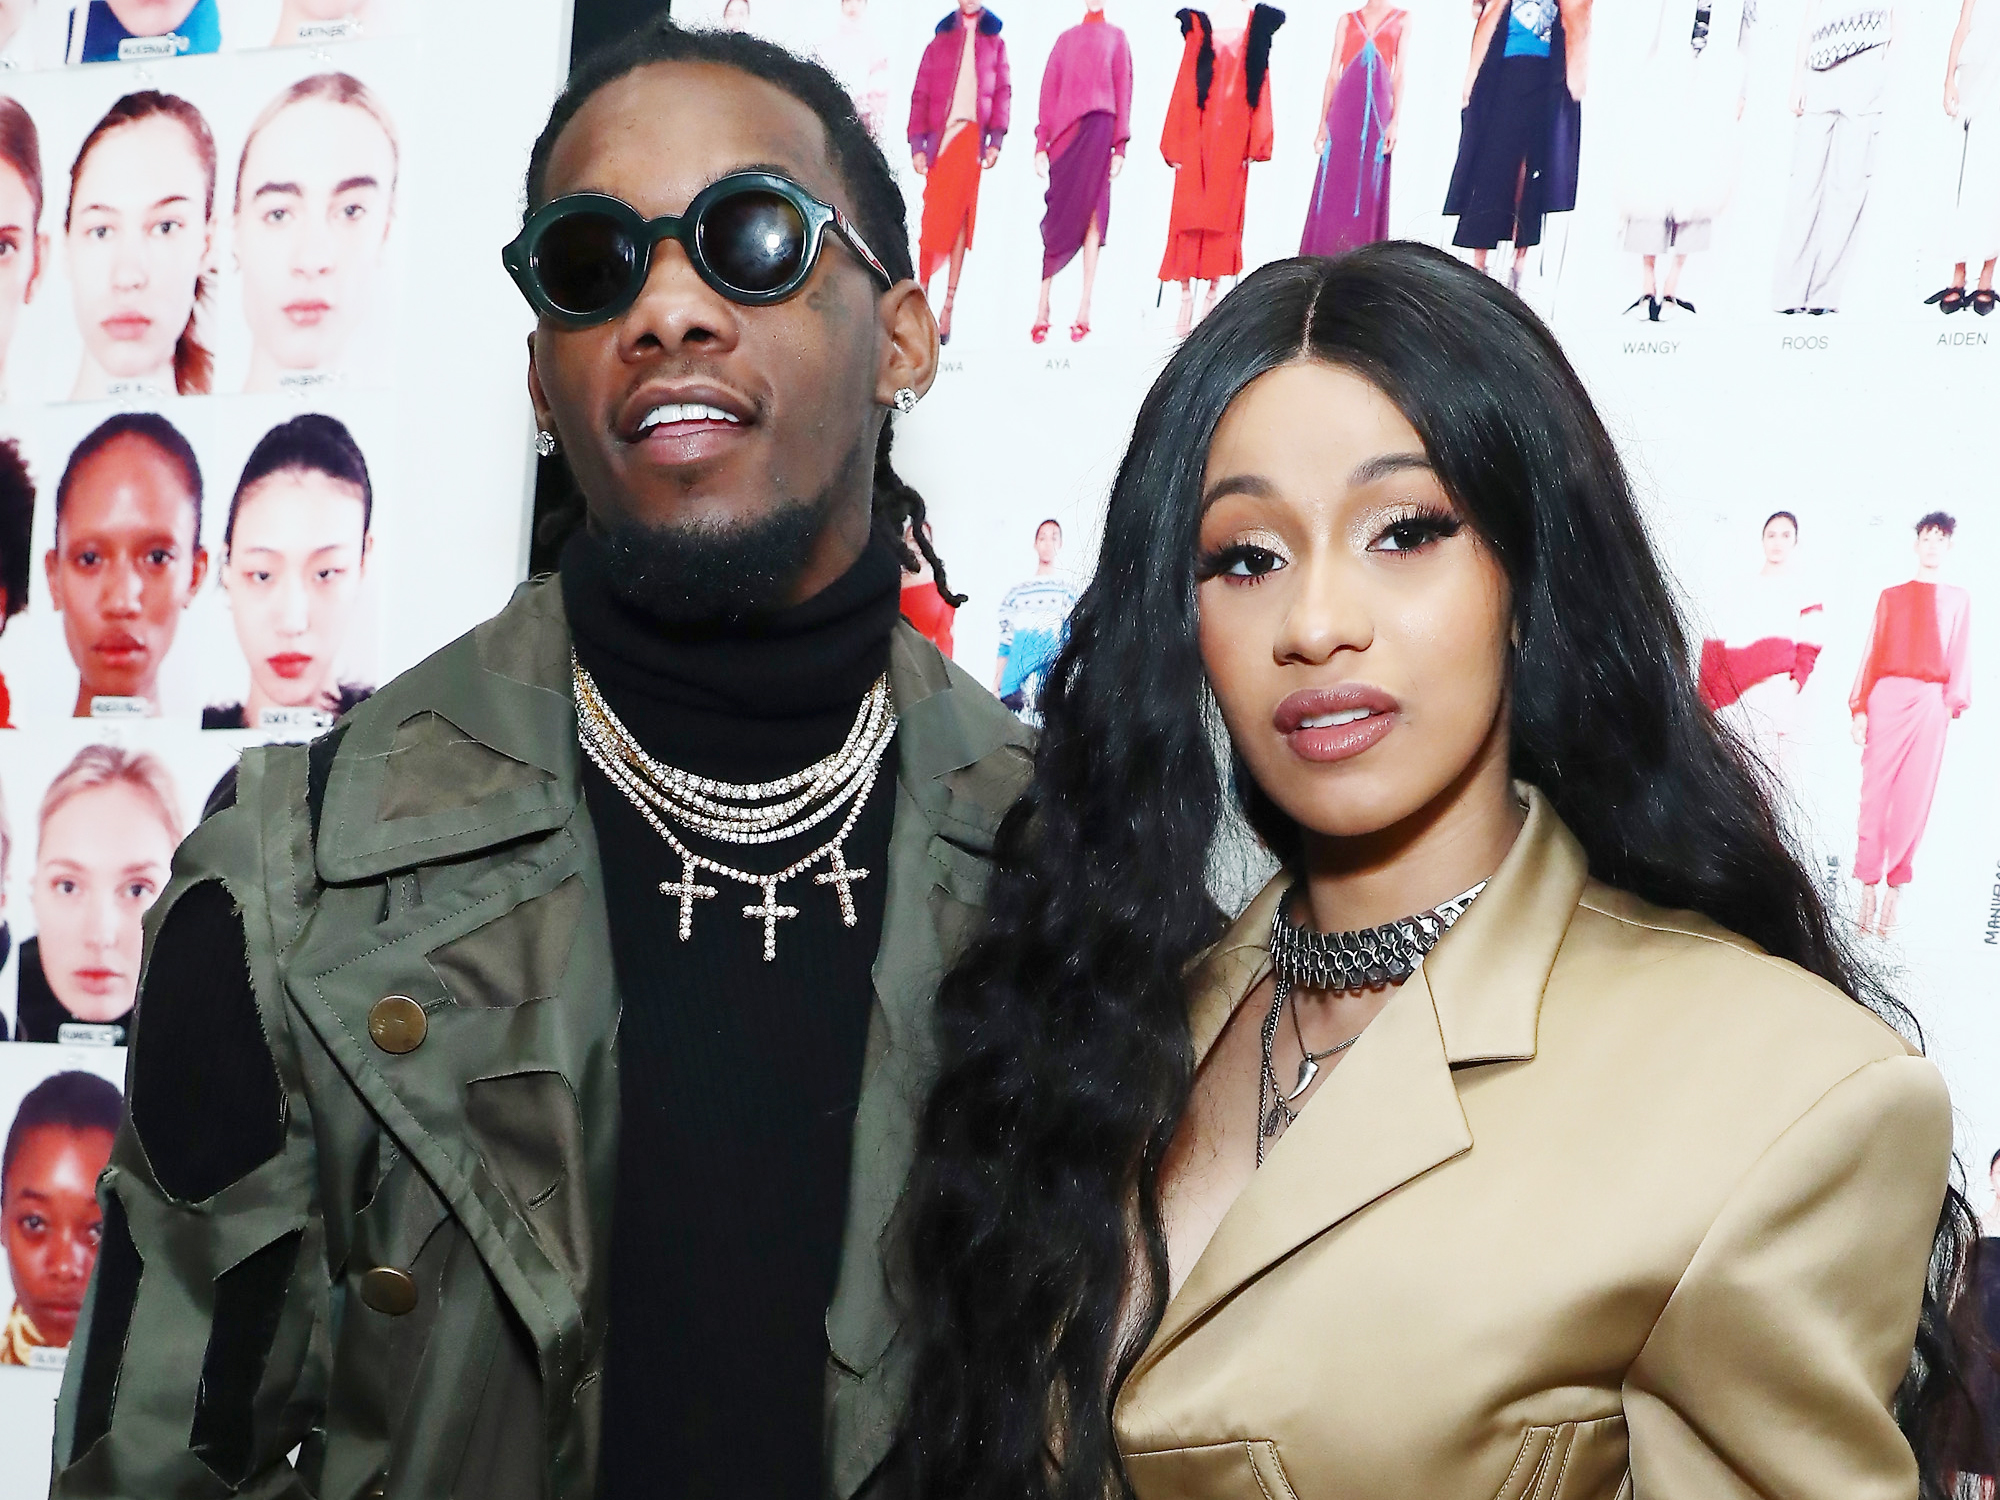 Cardi B wants strippers to be respected